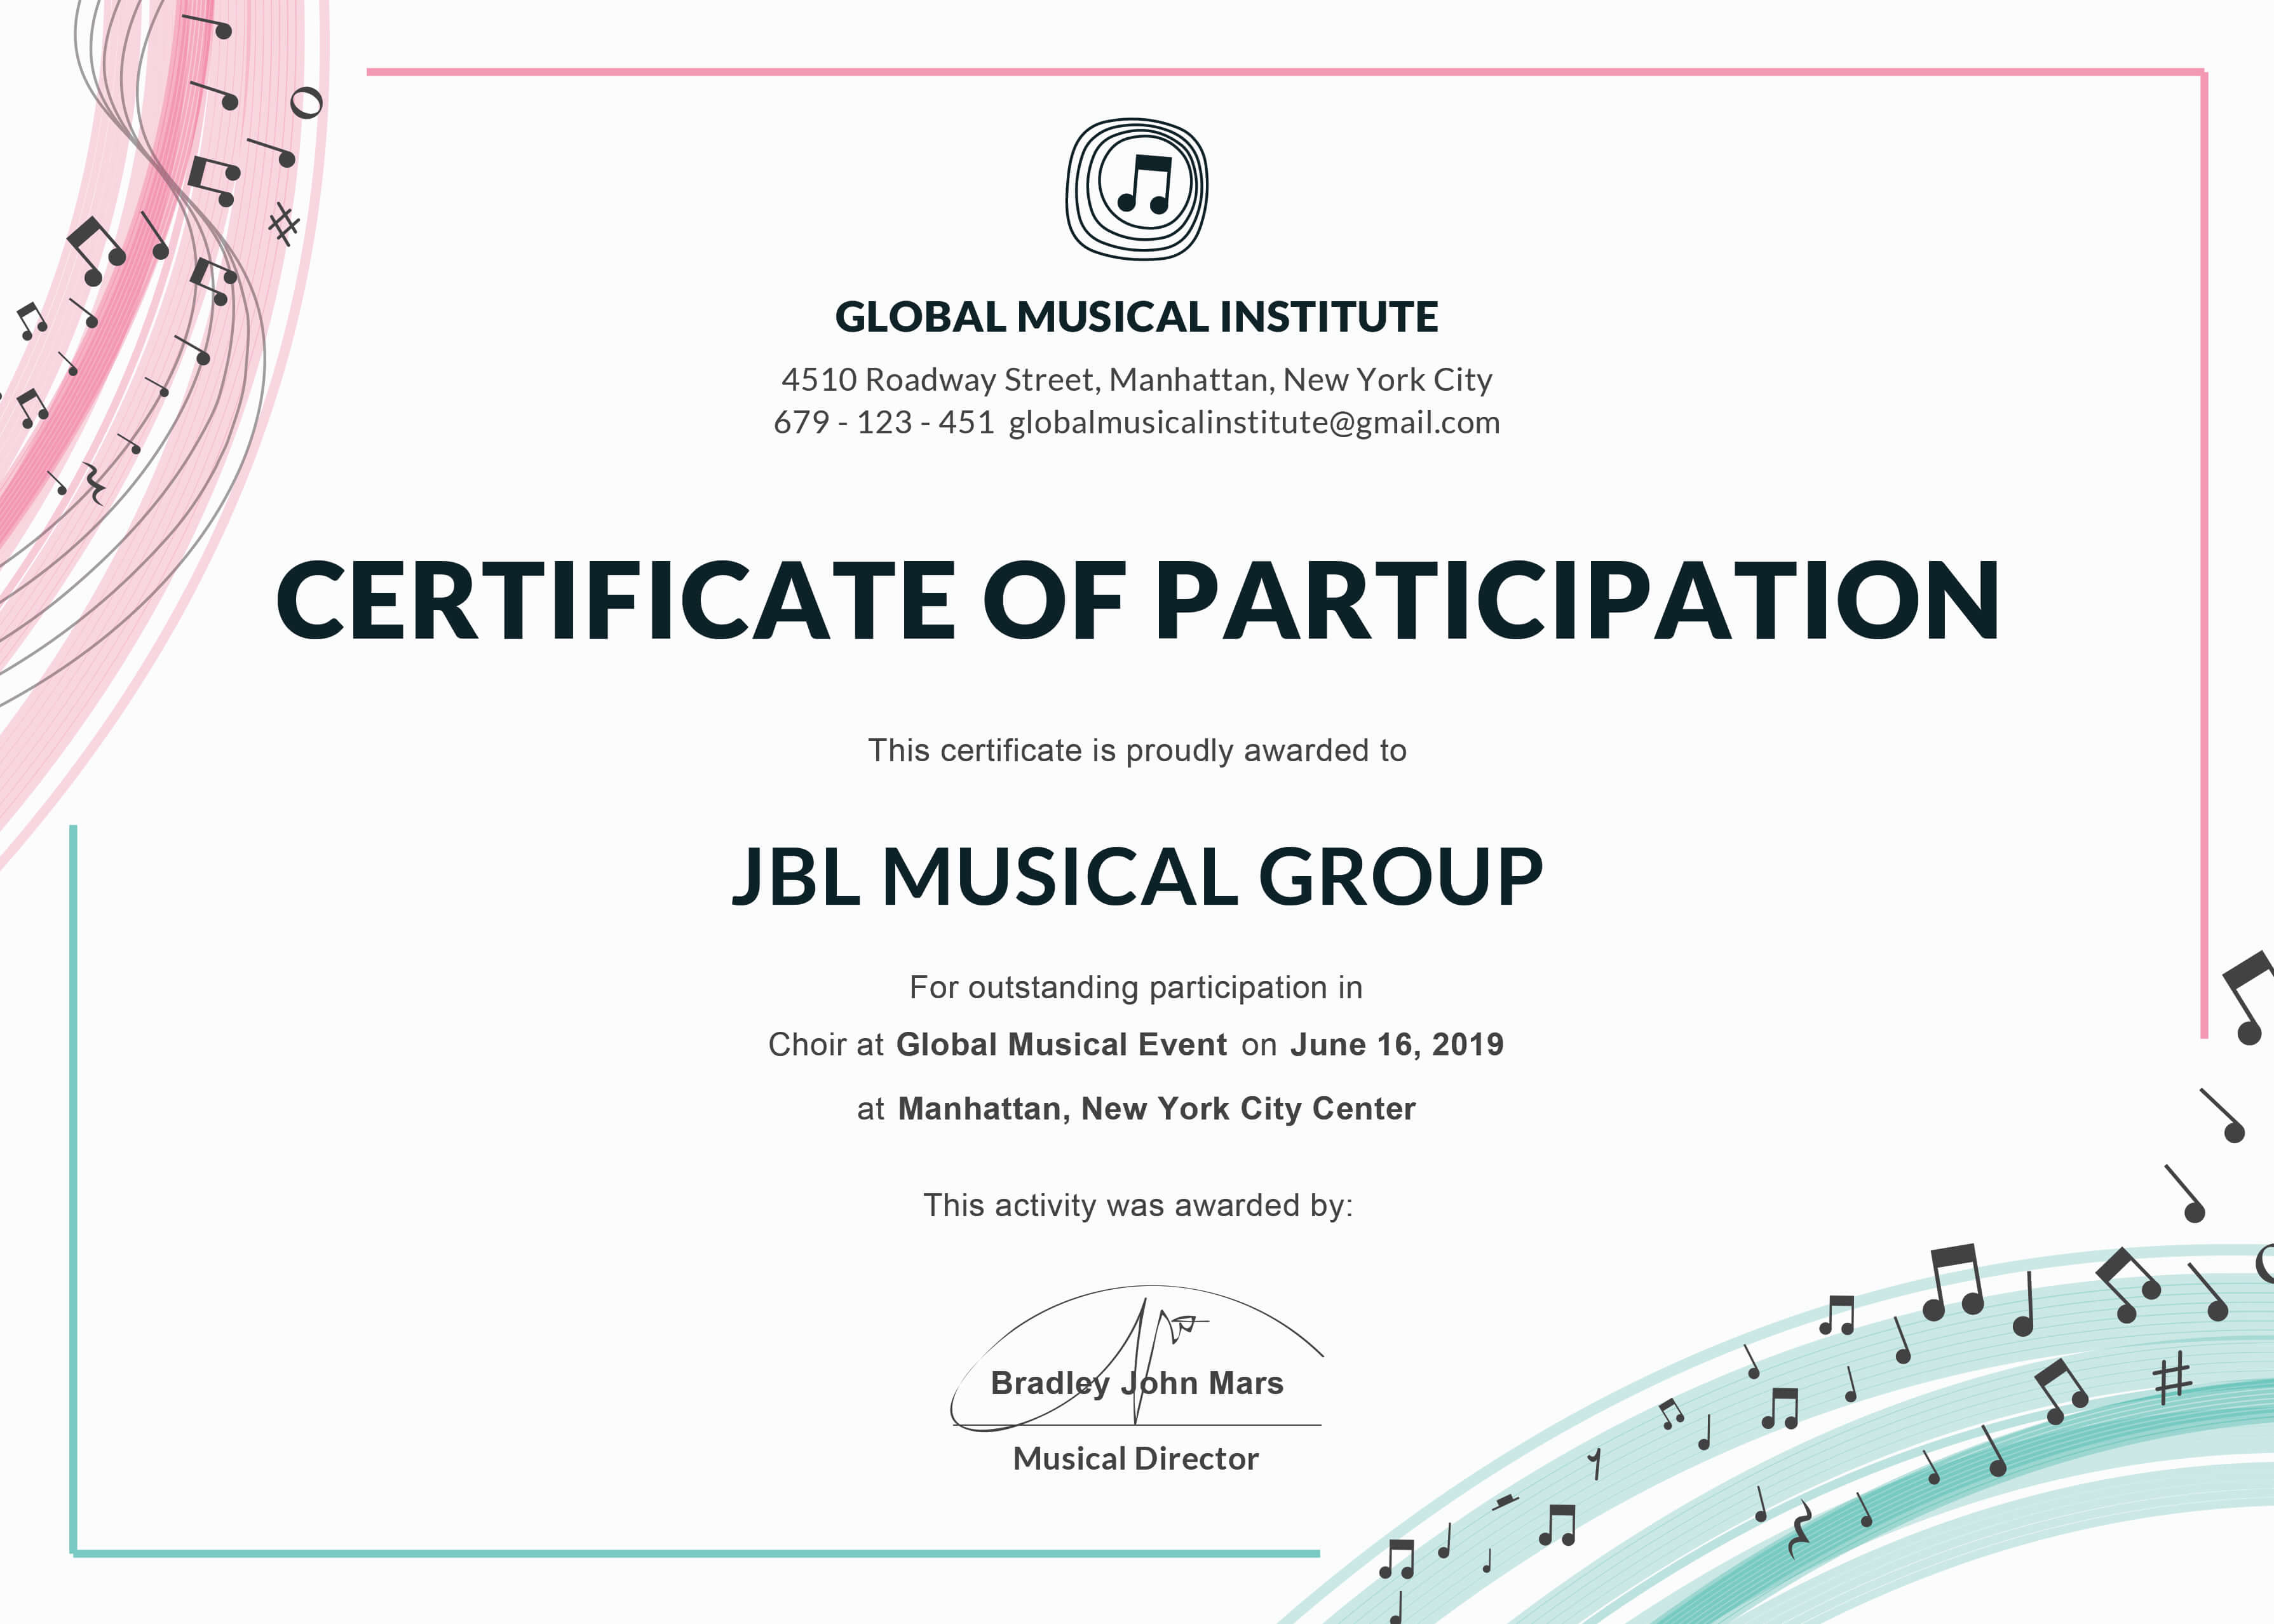 Certificate Of Participation Template Or Word Doc With Docx For Certificate Of Participation Template Doc